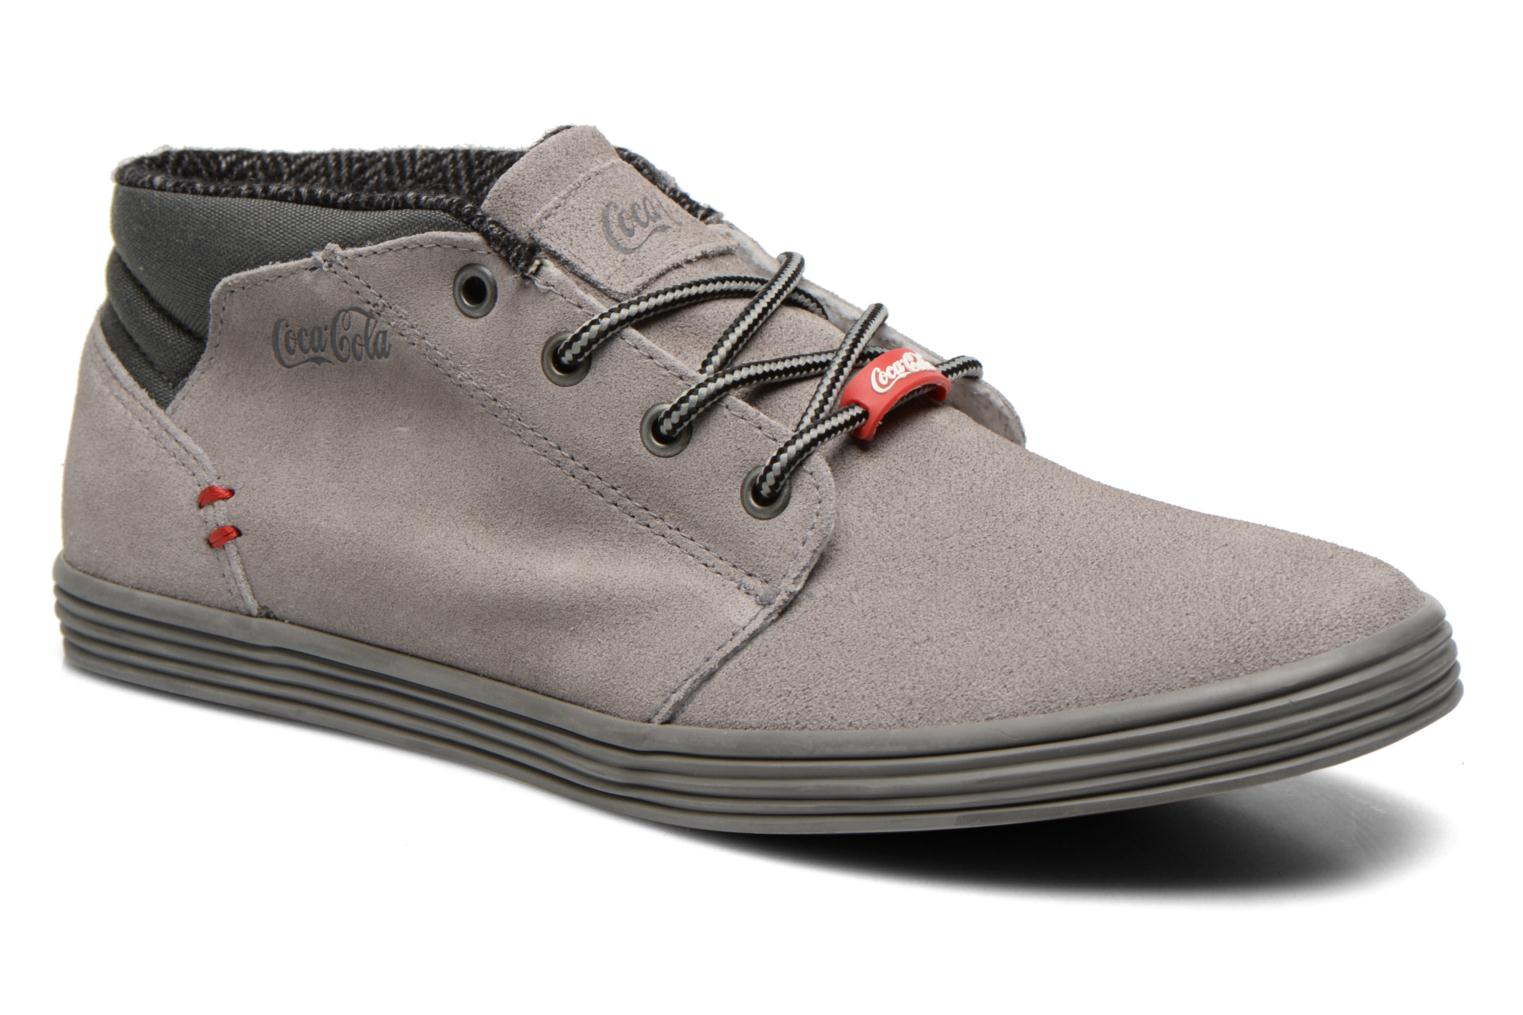 Sneakers Atacama Suede by Coca-cola shoes